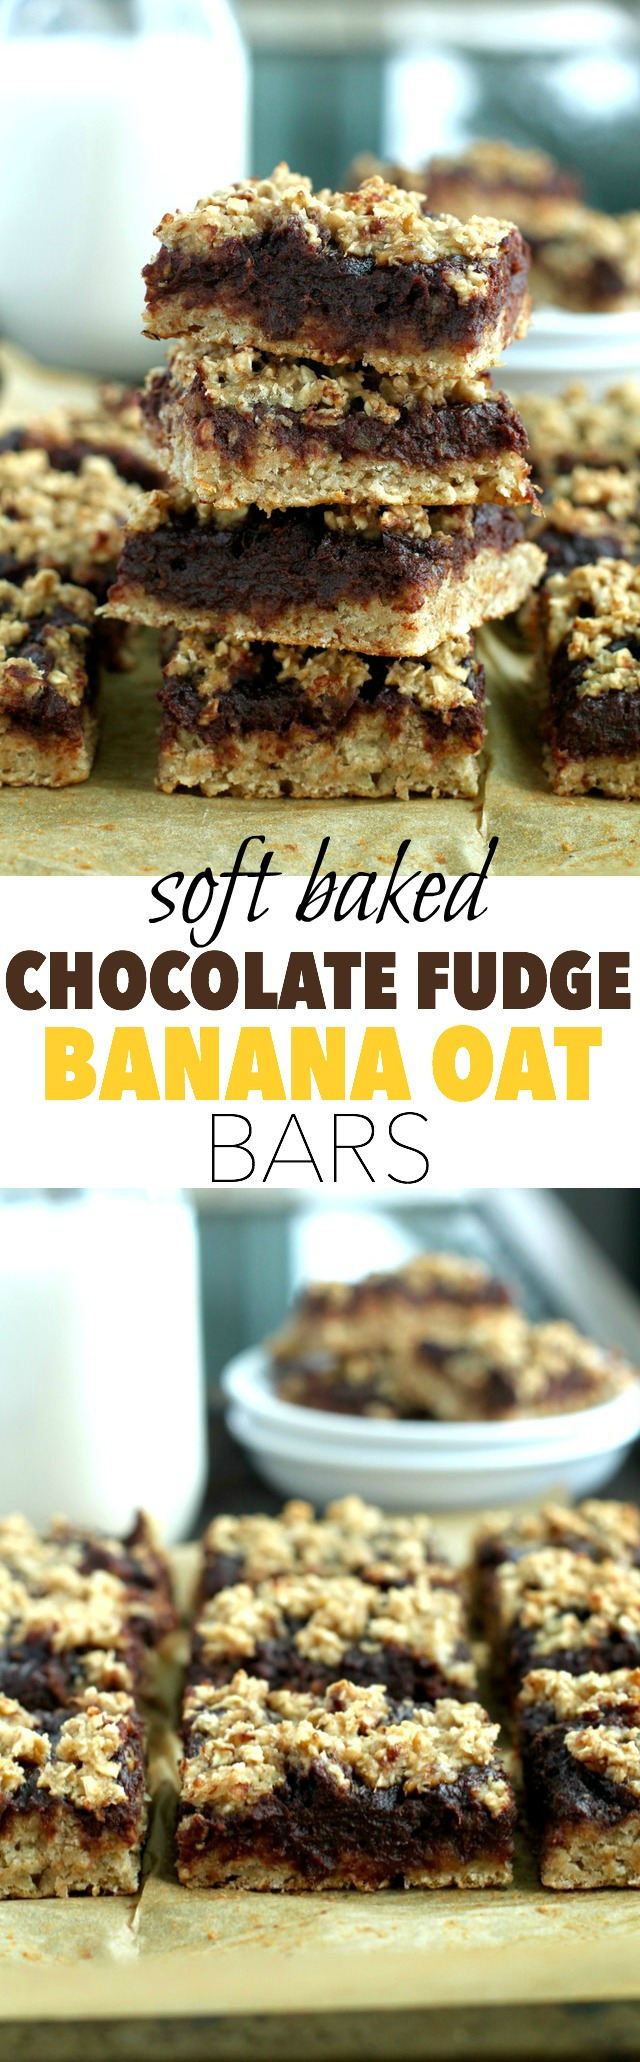 Chocolate-Fudge-Banana-Oat-Bars5.jpg